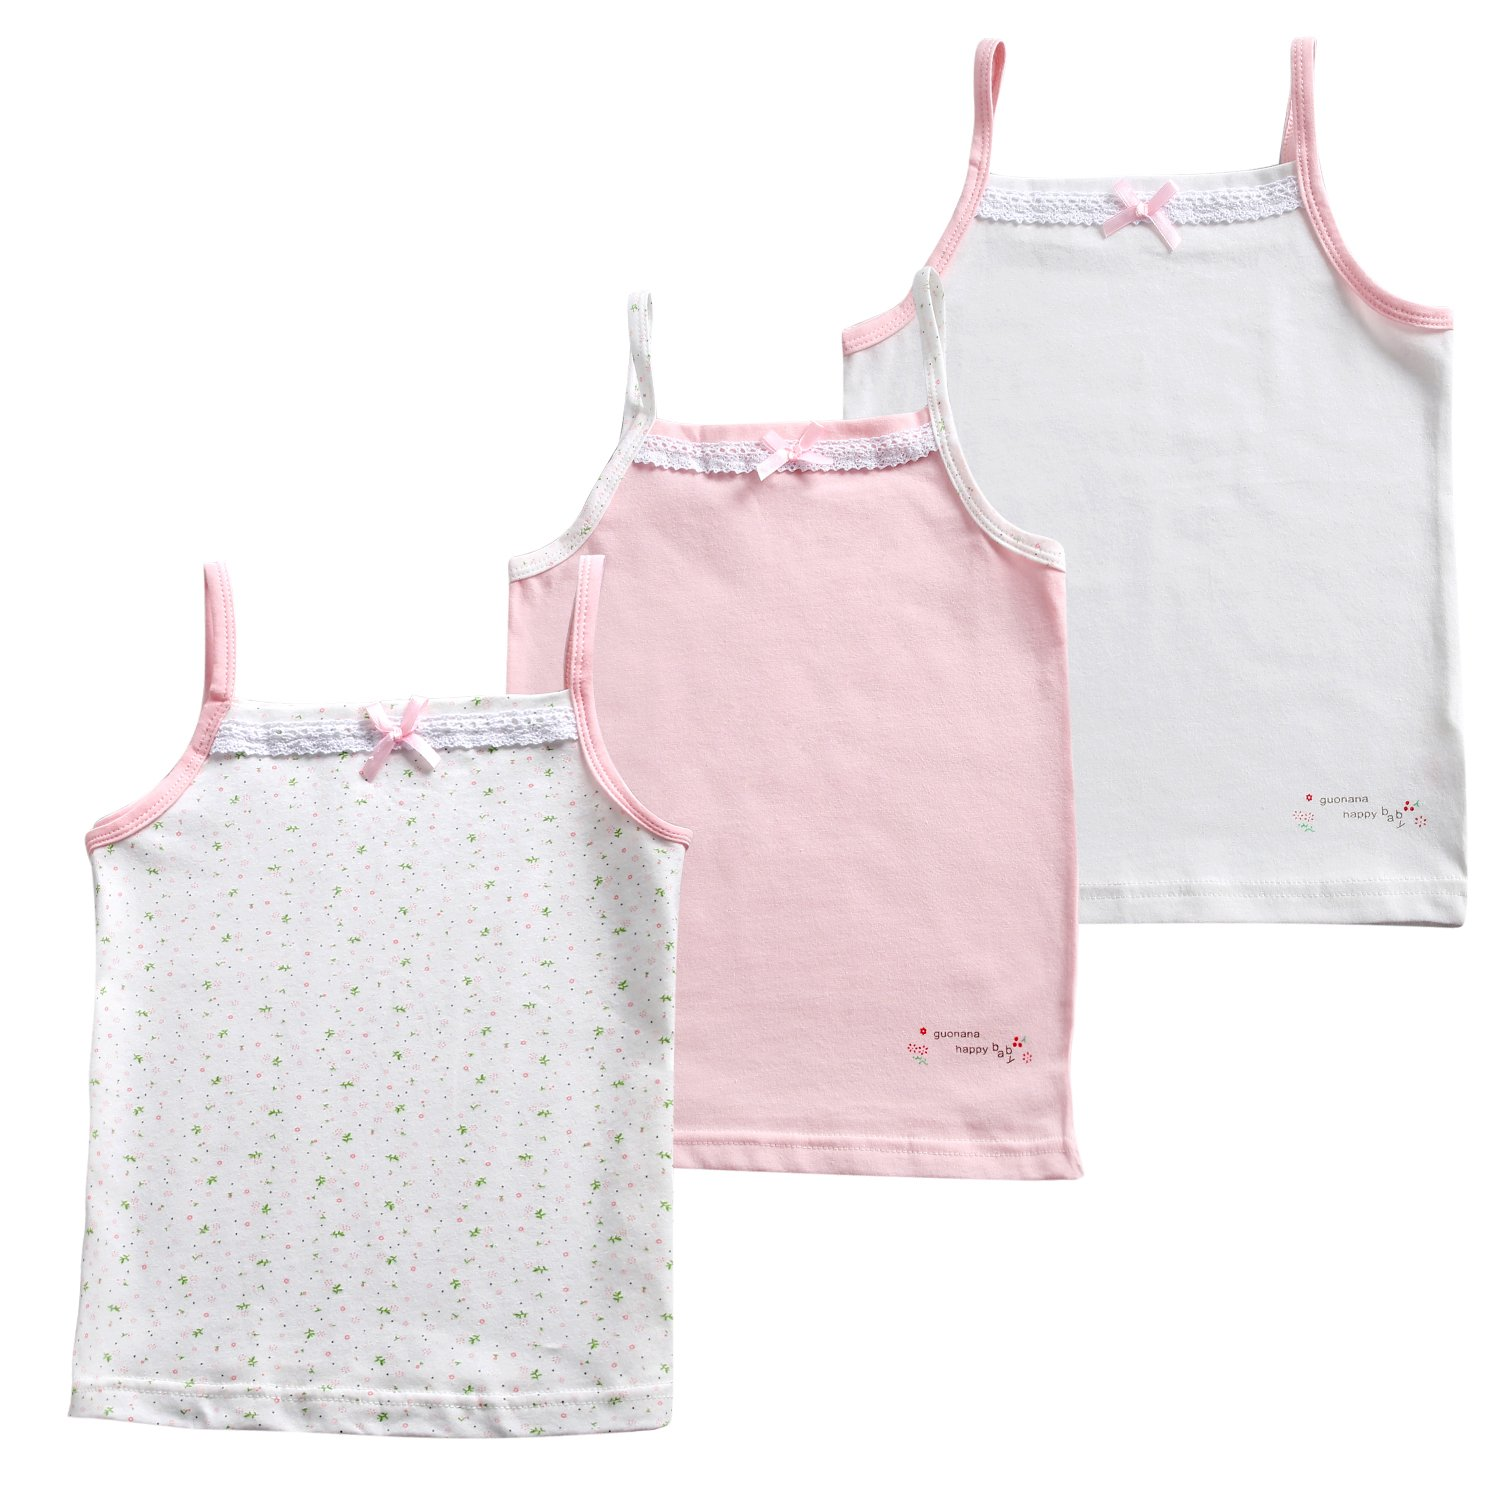 Kereda Girls Cotton Vests, 3 Pack Lace Trim Cami Top for Kids 2-10 Years